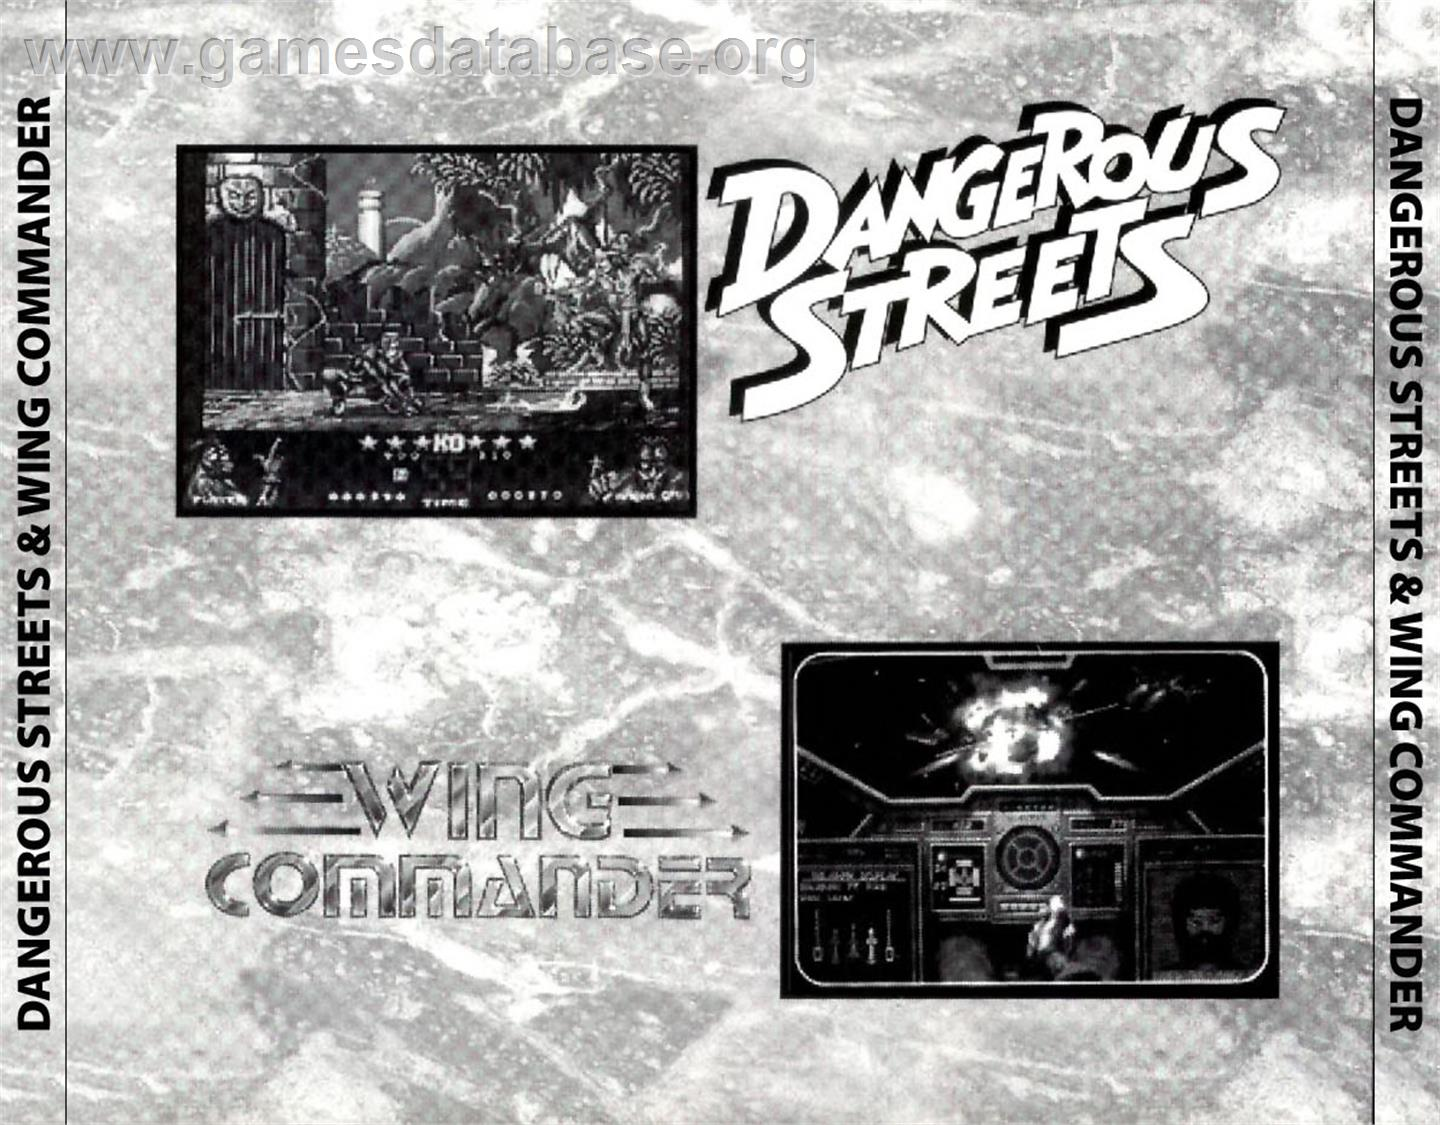 for Dangerous Streets & Wing Commander on the Commodore Amiga CD32